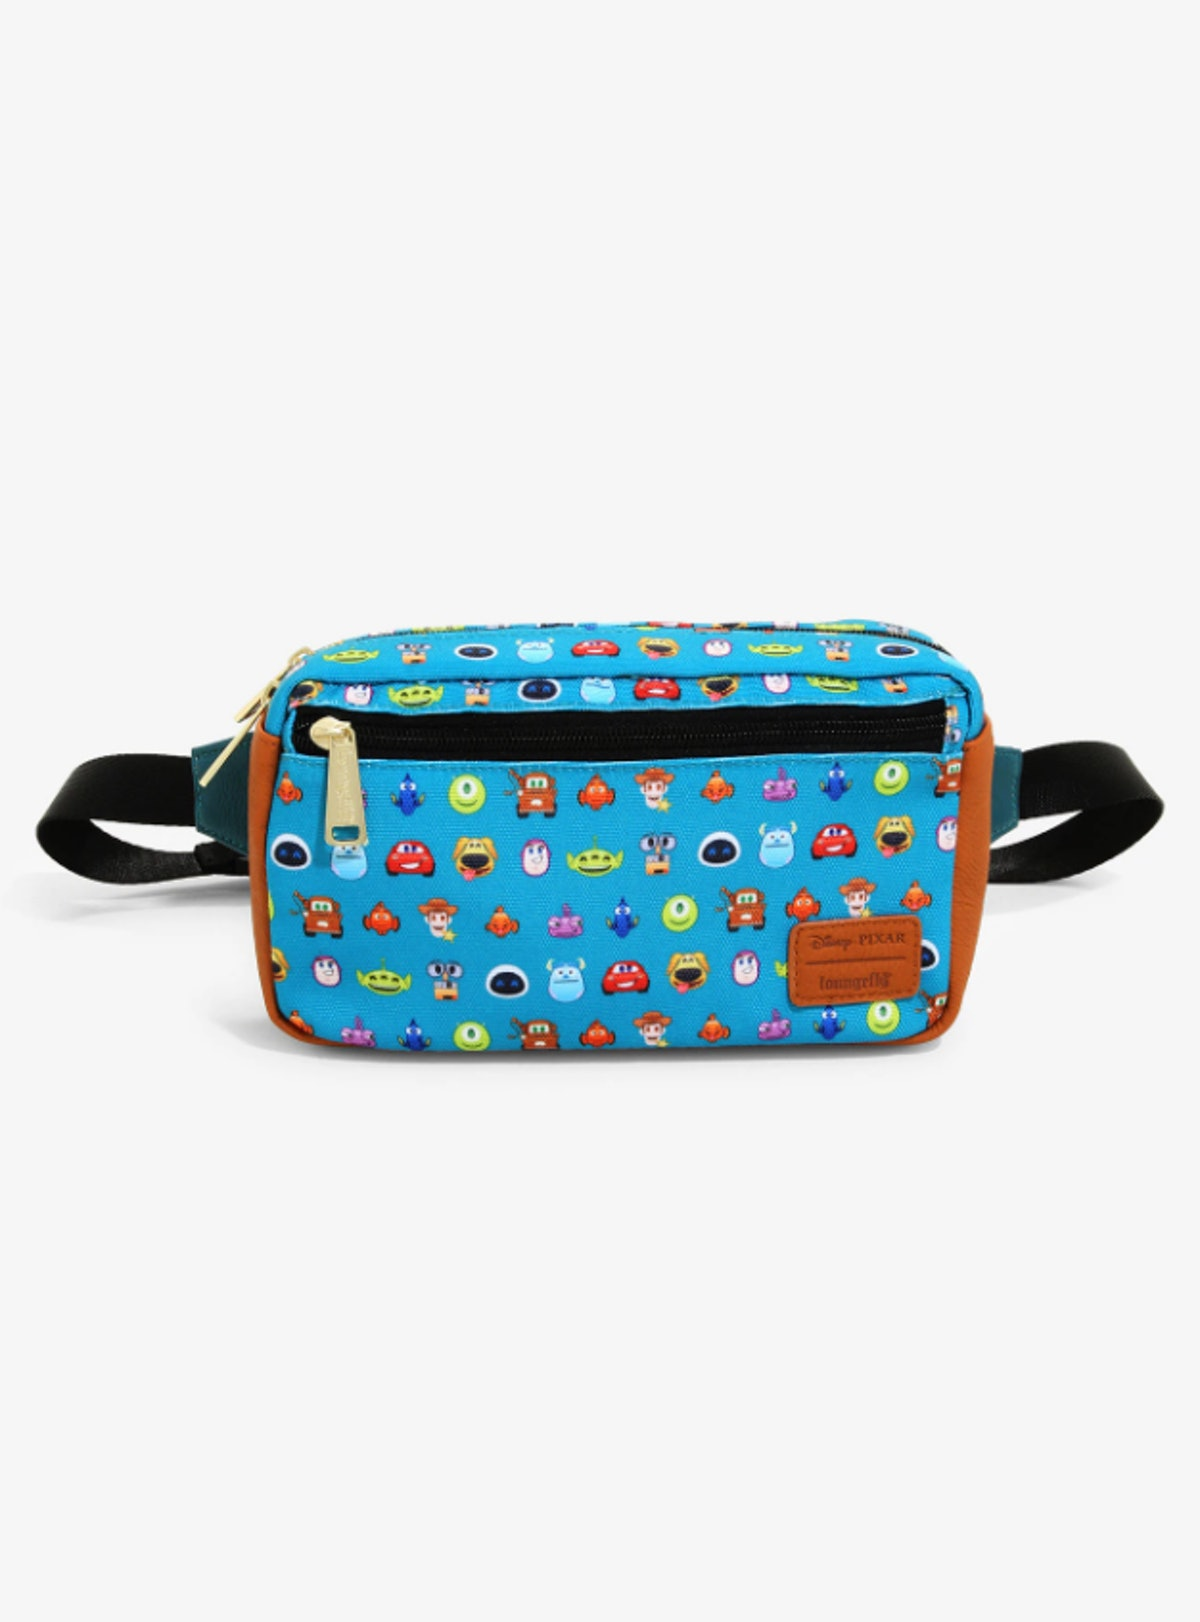 Loungefly Disney Pixar All Cast Fanny Pack - BoxLunch Exclusive